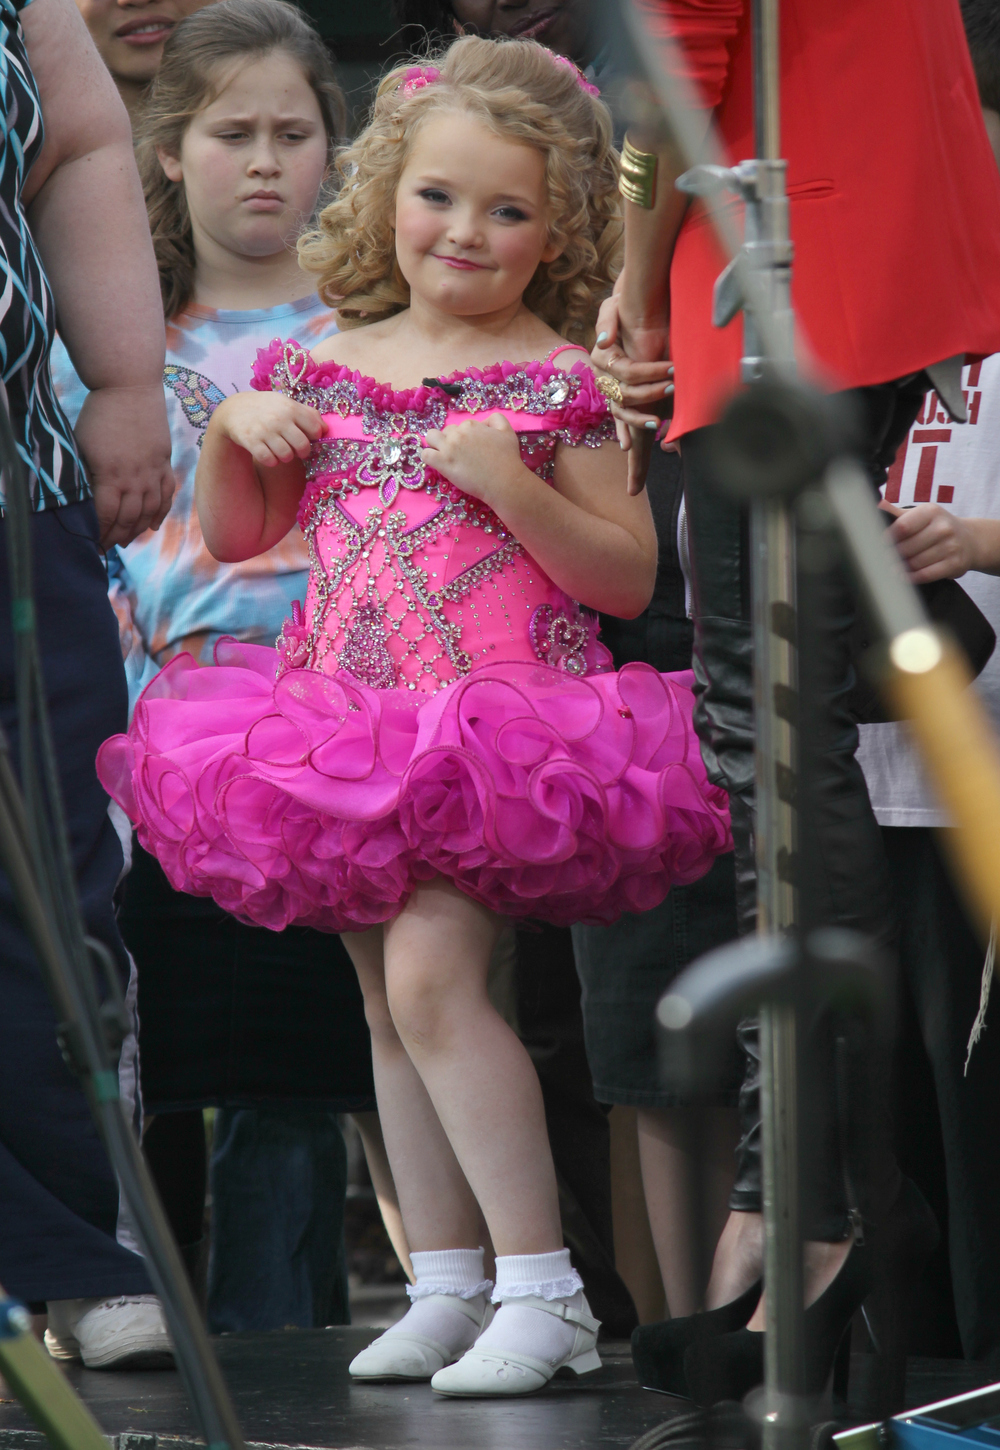 Oh No! Honey Boo Boo Is Suffering From PTSD After the Car Accident